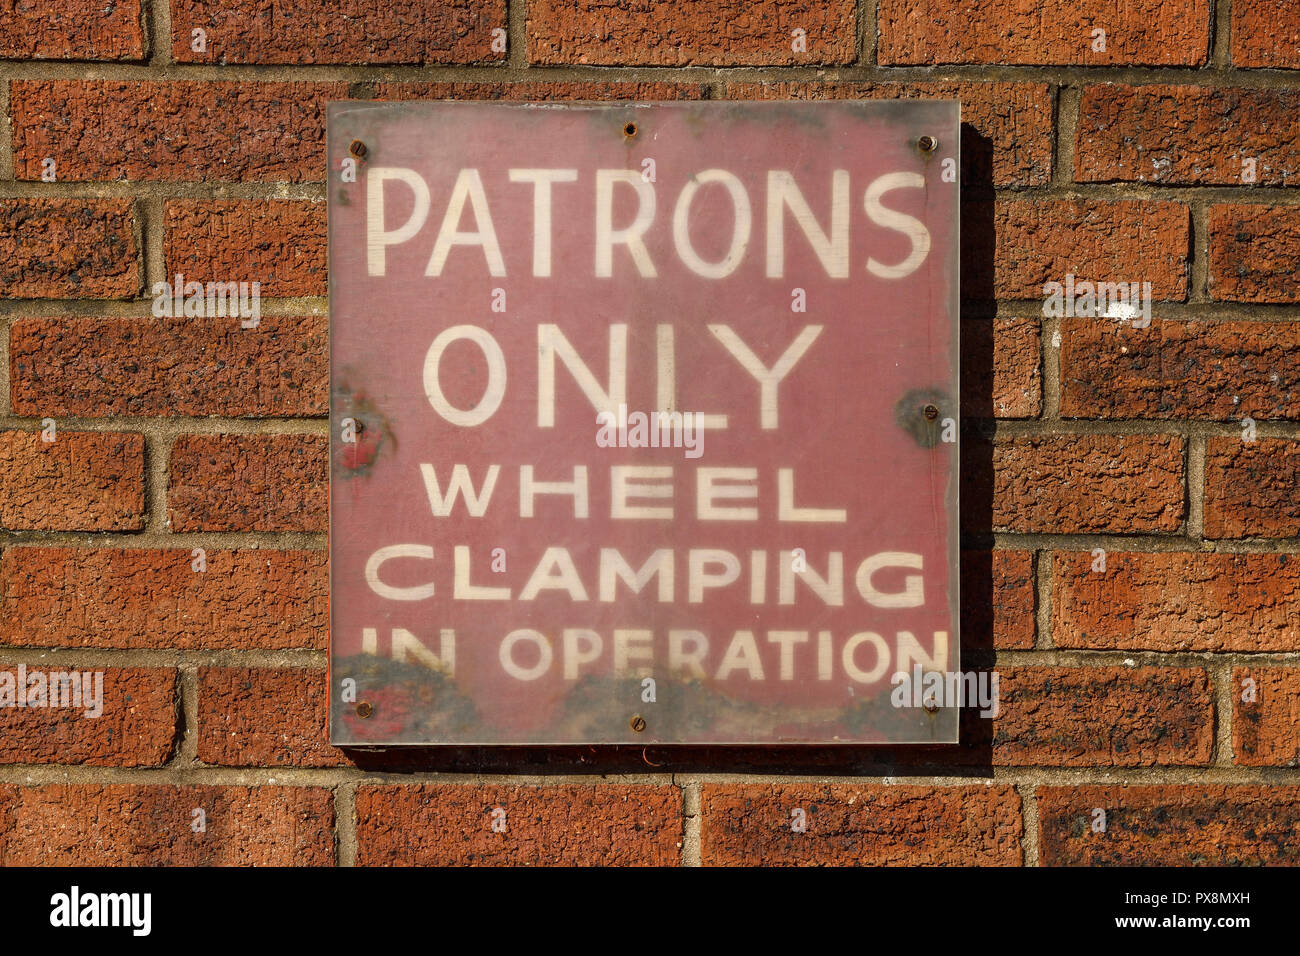 Patrons only wheel clamping in operation sign on a brick wall - Stock Image